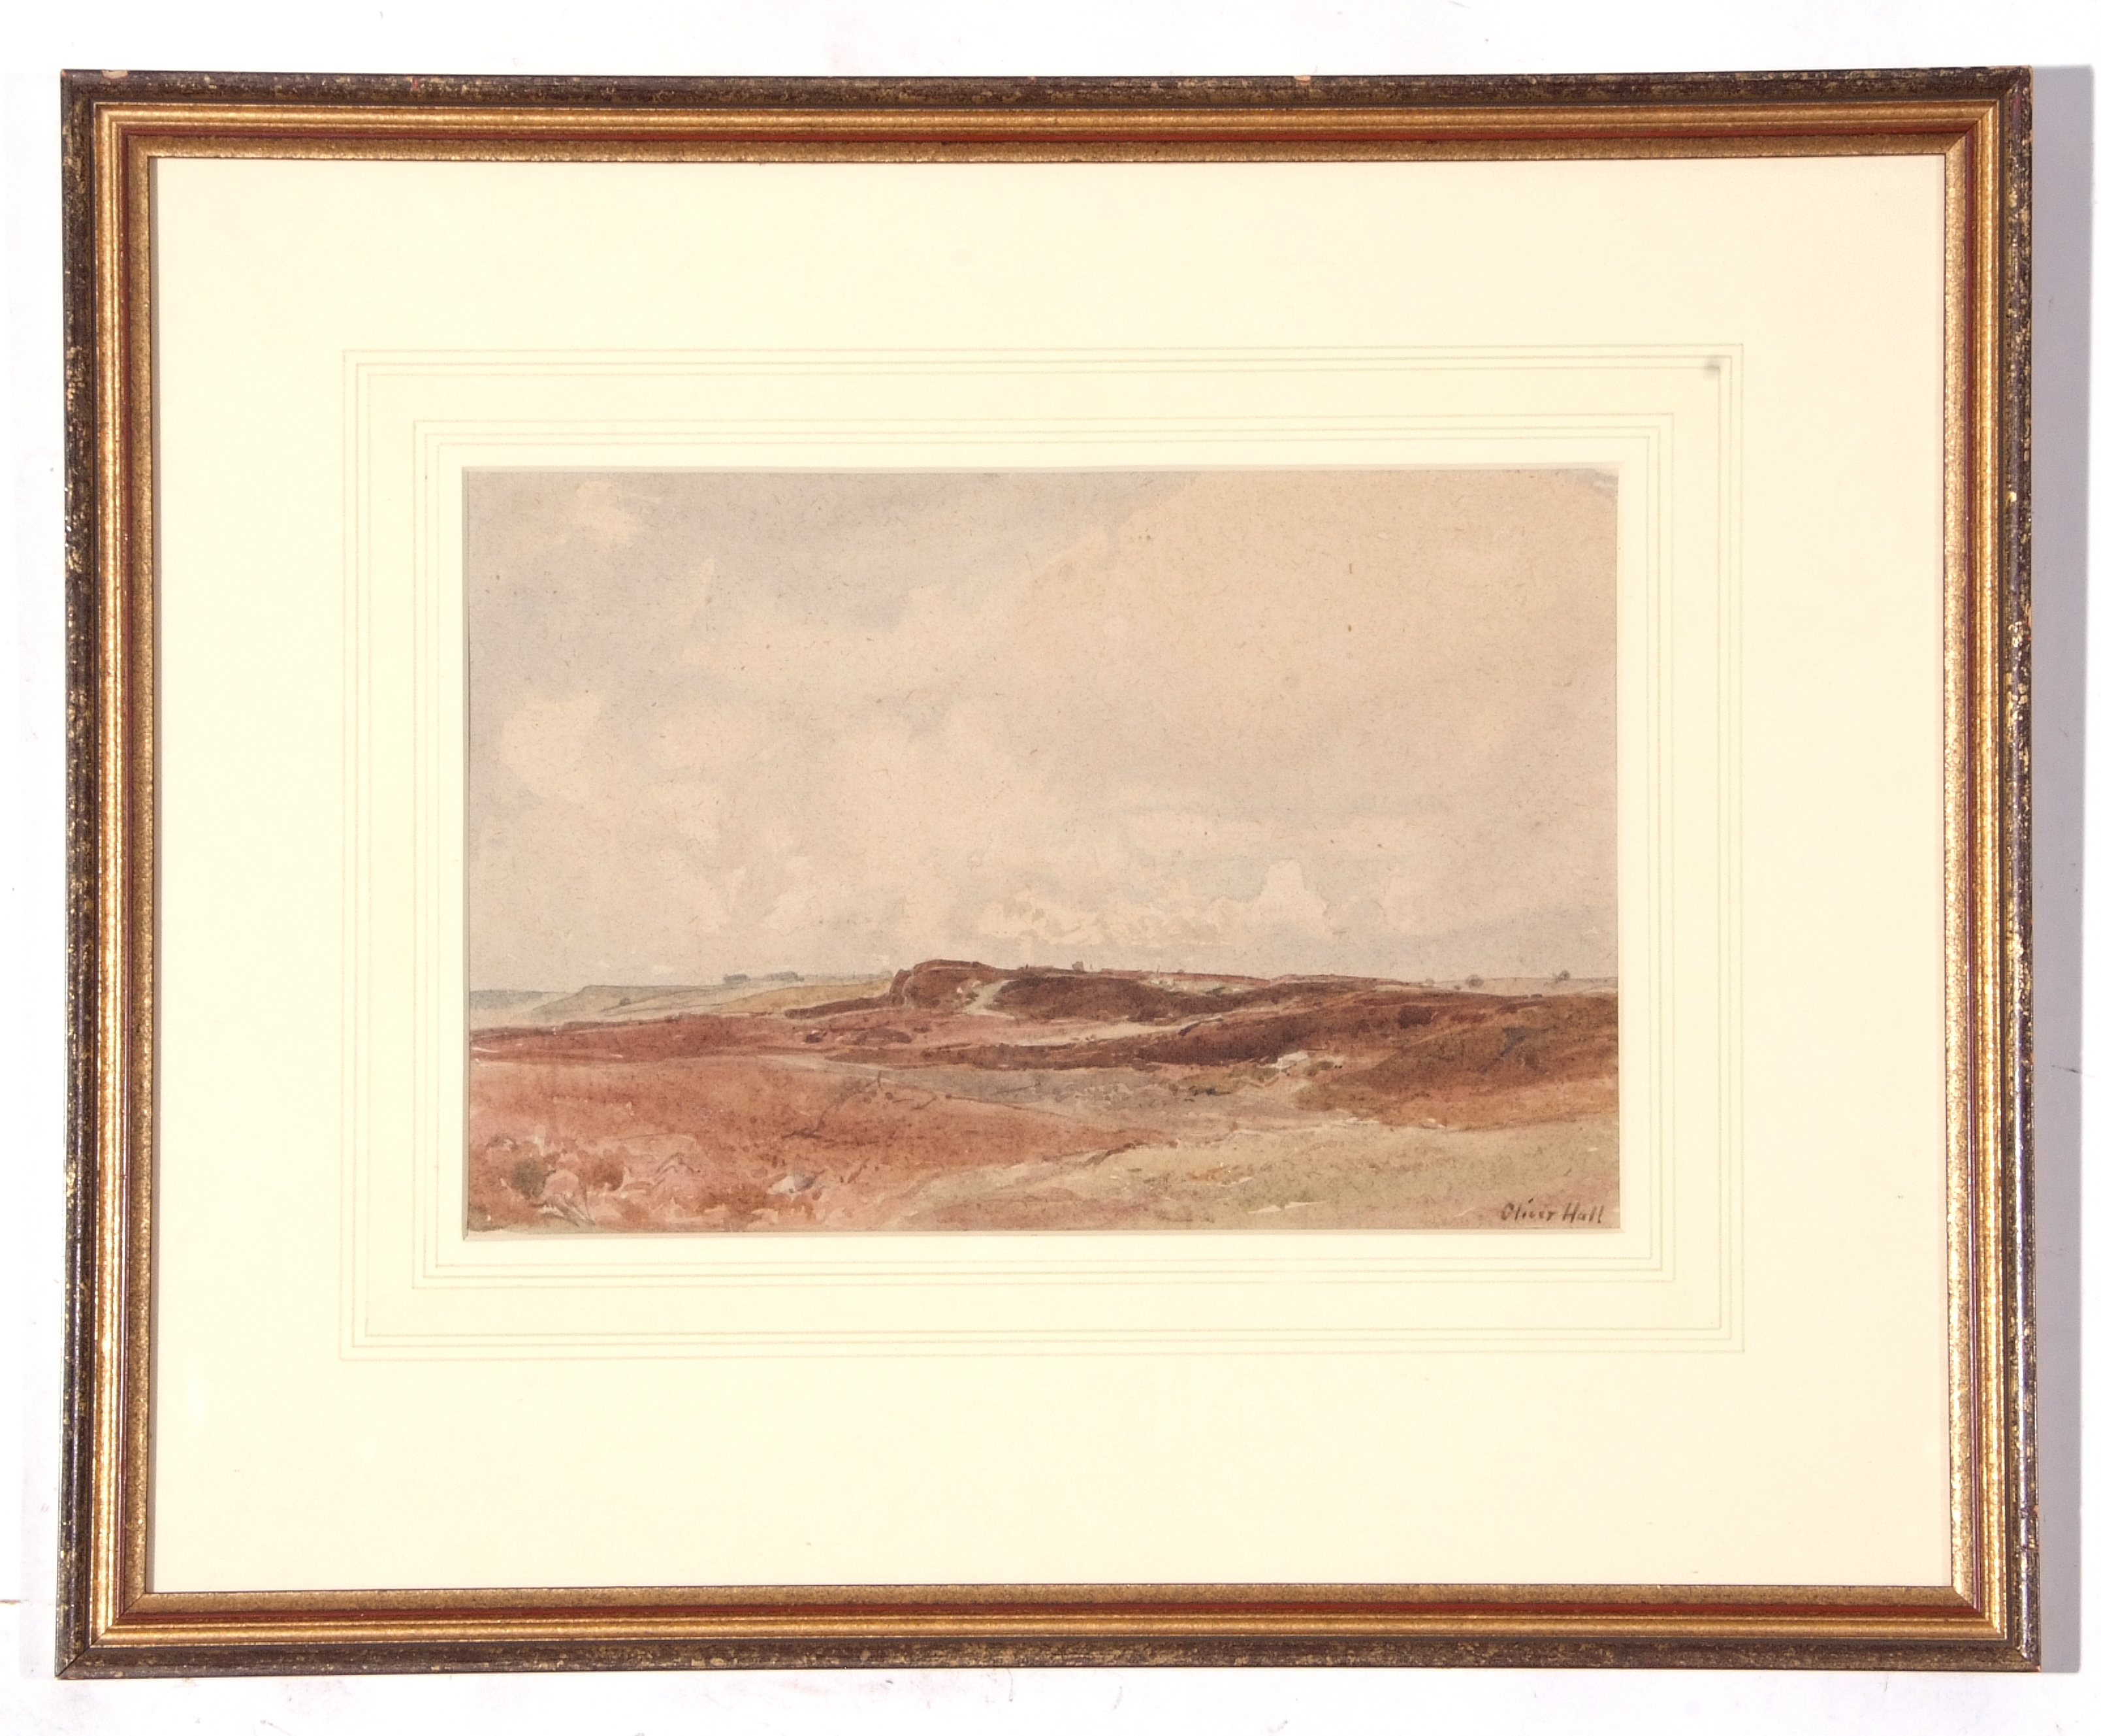 Oliver Hall, Moorland near Shap, watercolour, 23 x 35cm